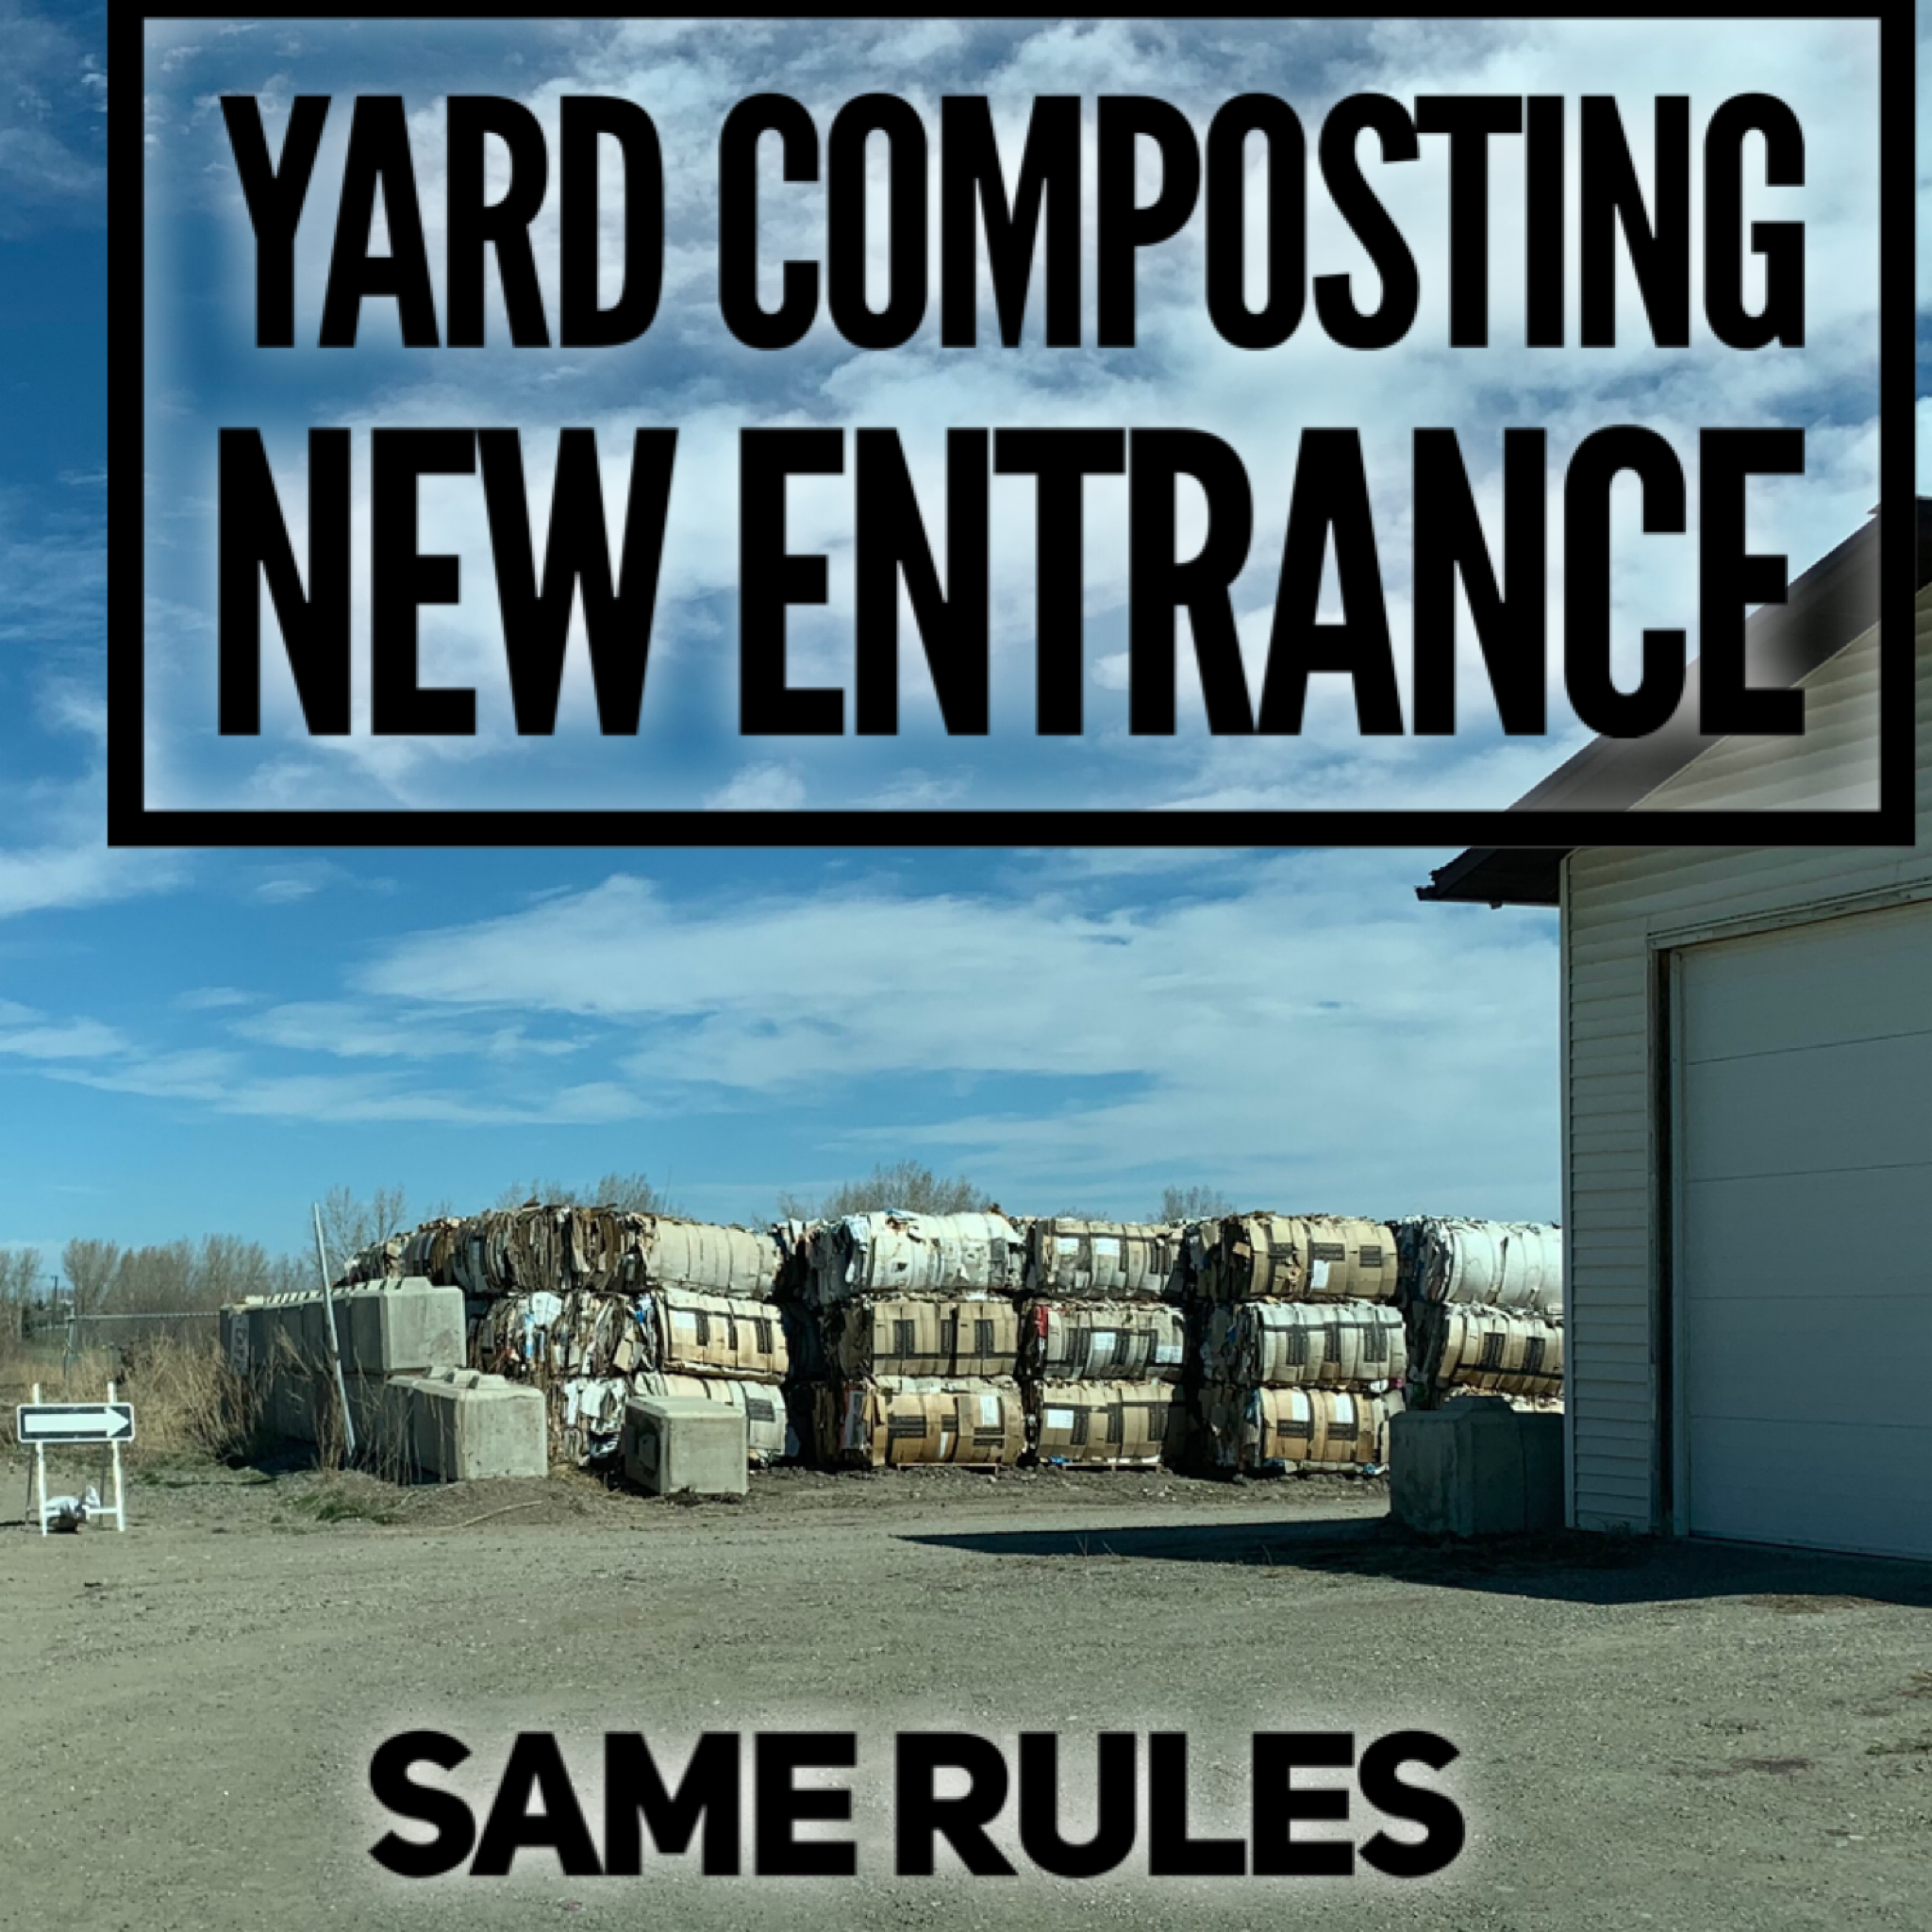 yard composting entrance text